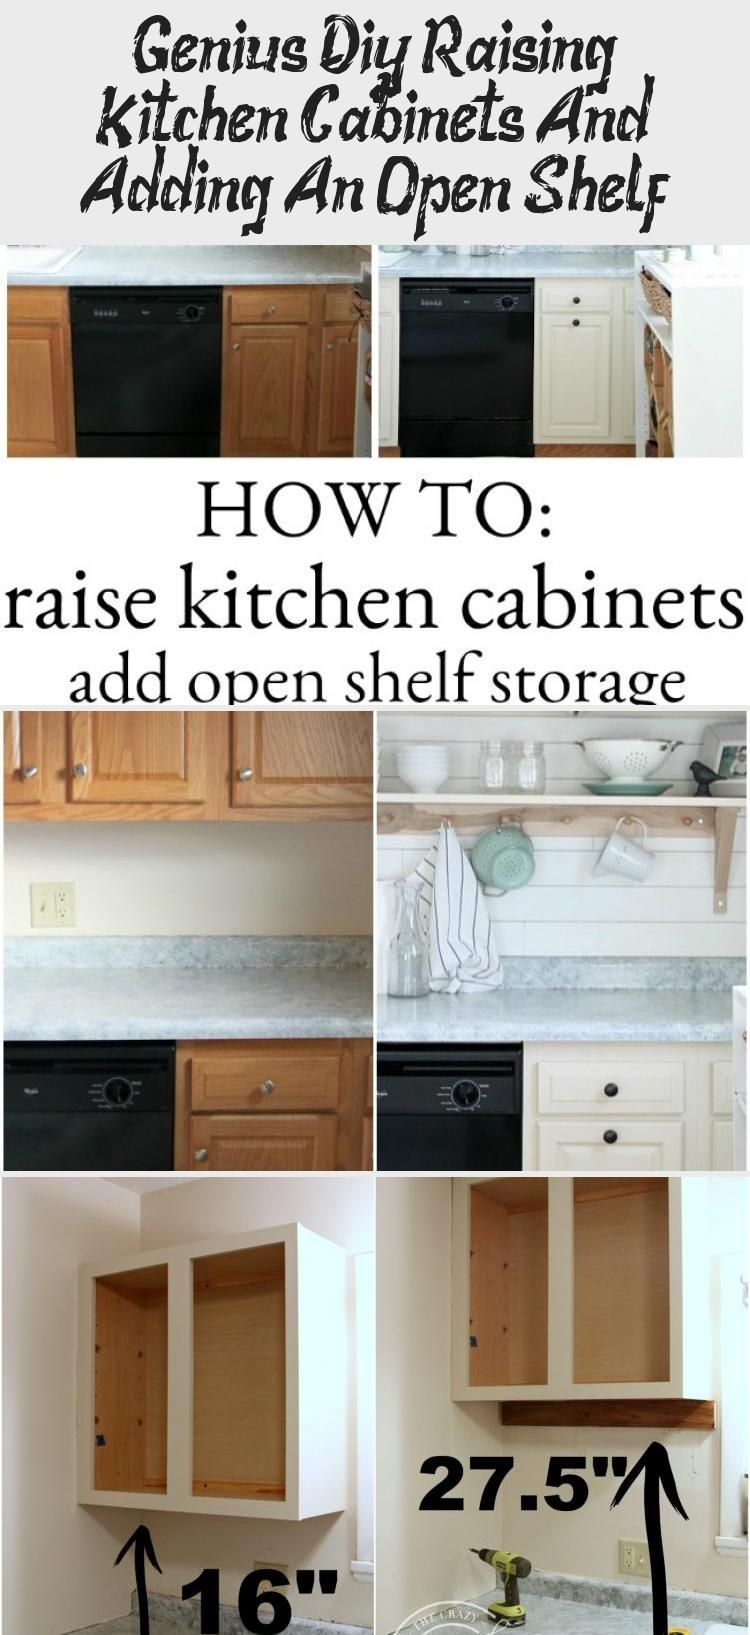 Genius Diy Raise The Kitchen Cabinets And Add An Open Shelf Decor Zone In 2020 Small Kitchen Storage Diy Open Shelving Kitchen Cabinets